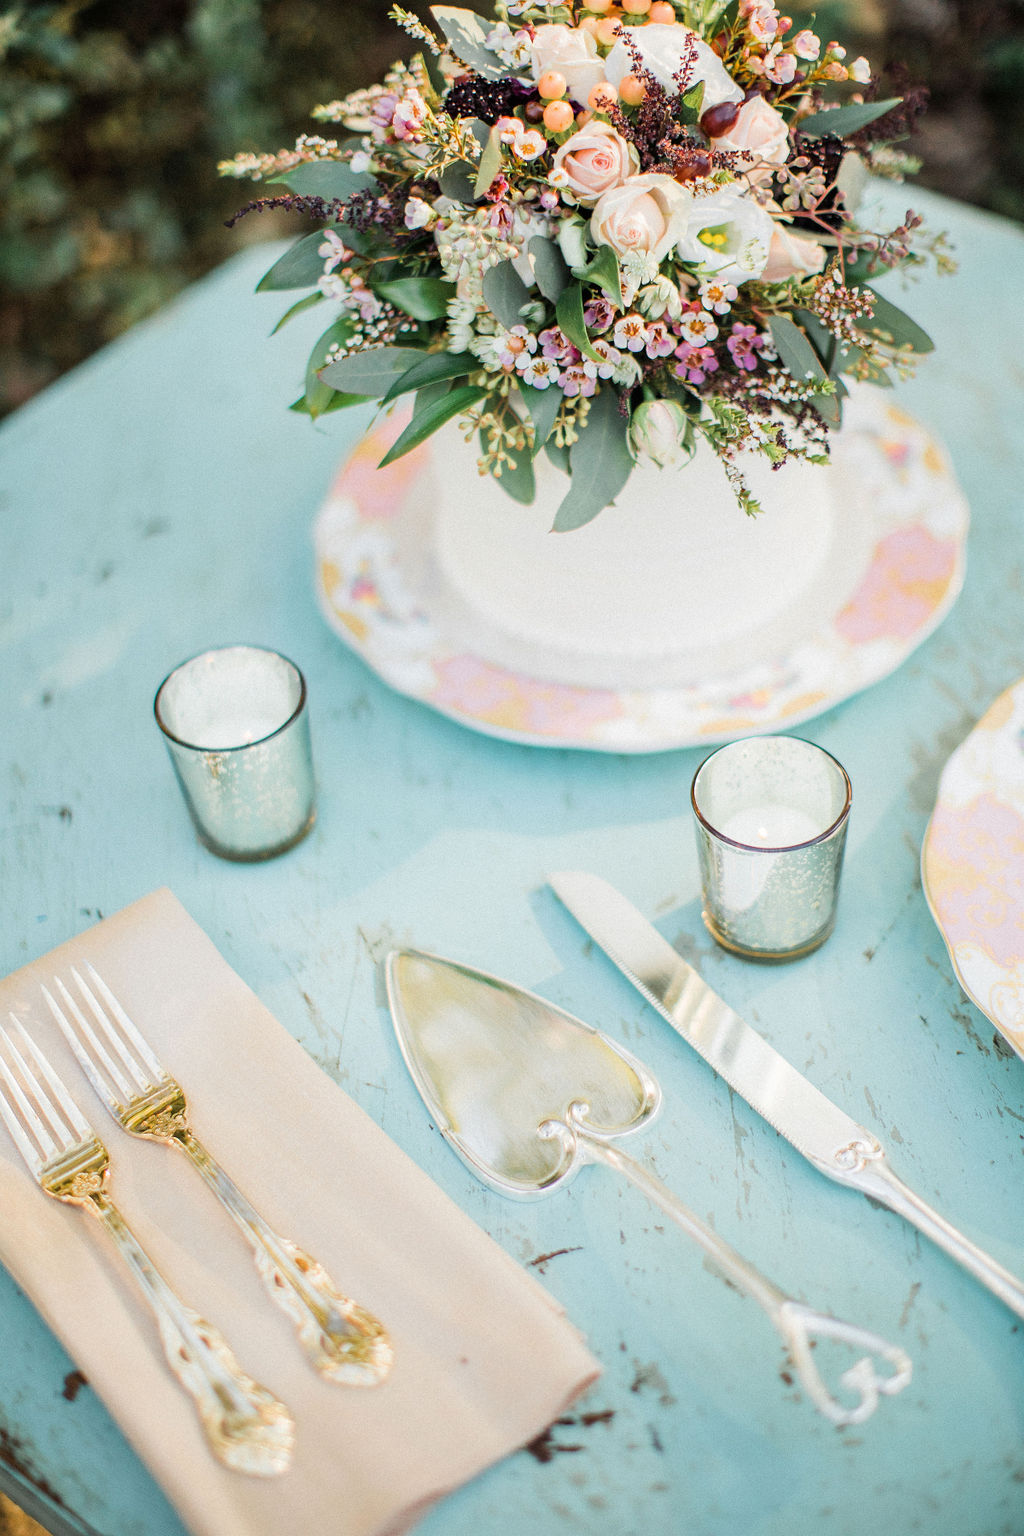 Intimate Vintage Garden Wedding / Planning by Lucky Day Events Co. / Photo by Danielle Riley / The Parlour at Mann's Chapel